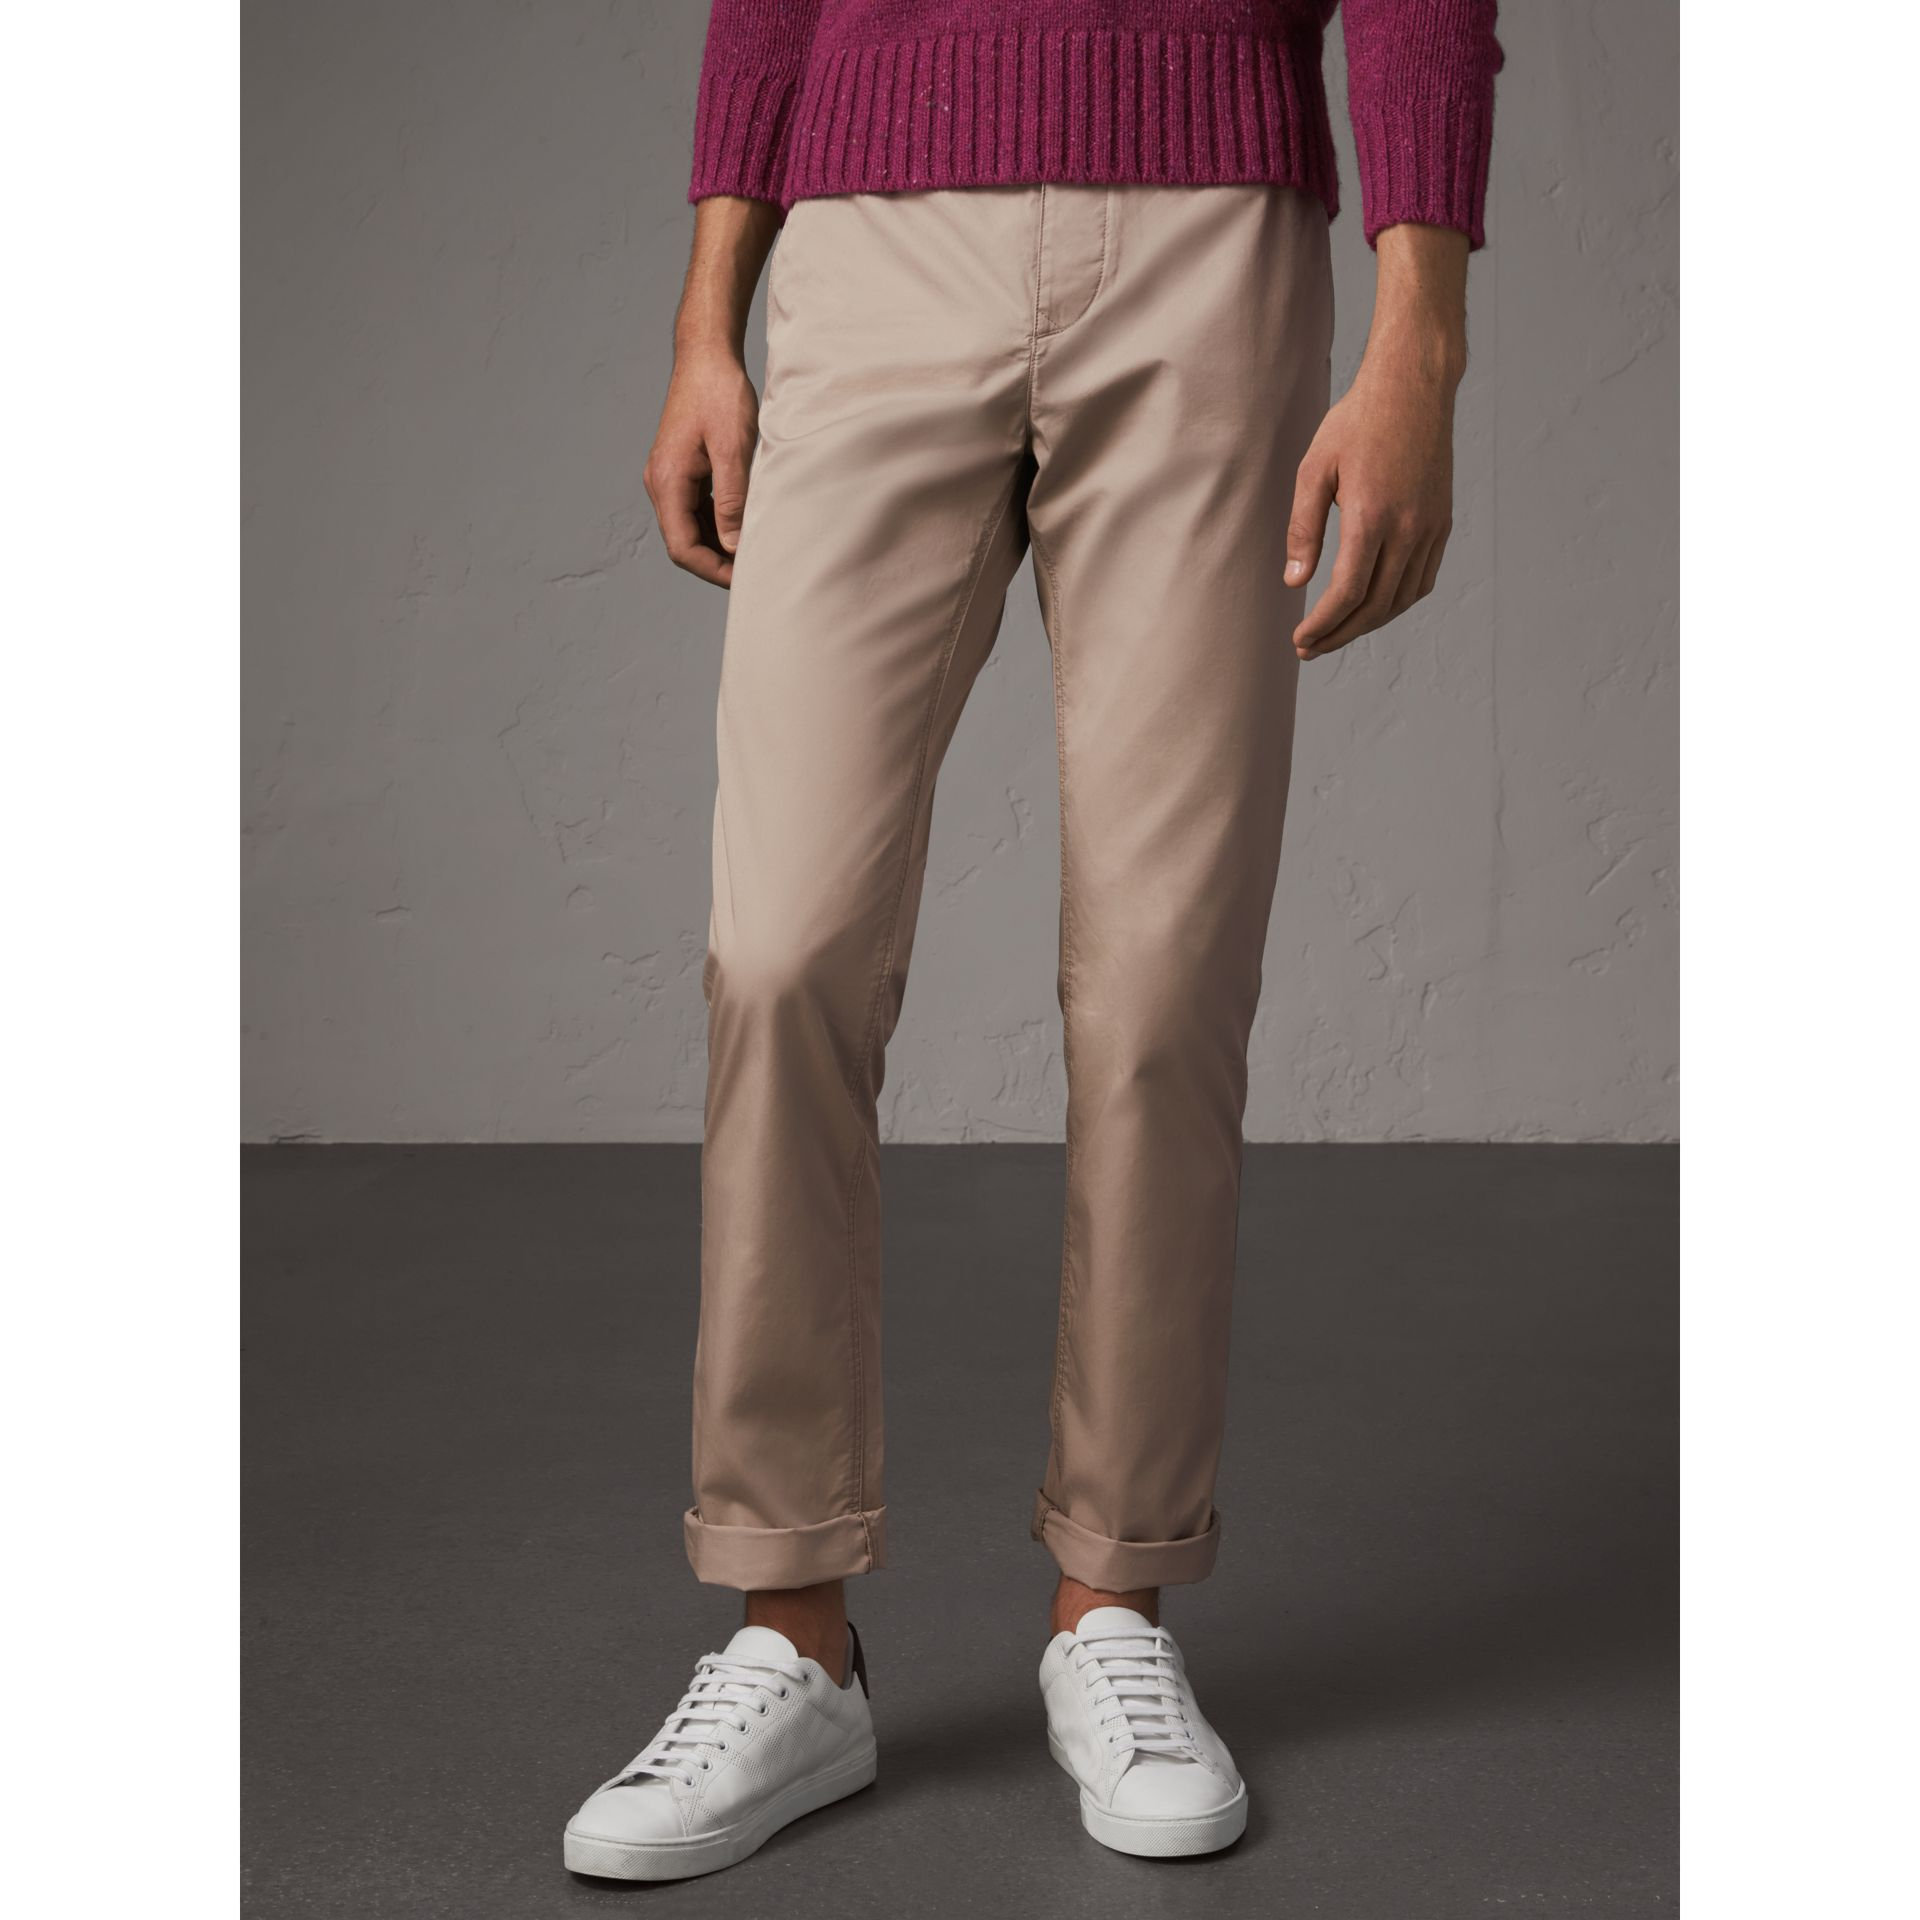 Pantalon chino de coupe droite en coton (Taupe) - Homme | Burberry - photo de la galerie 4